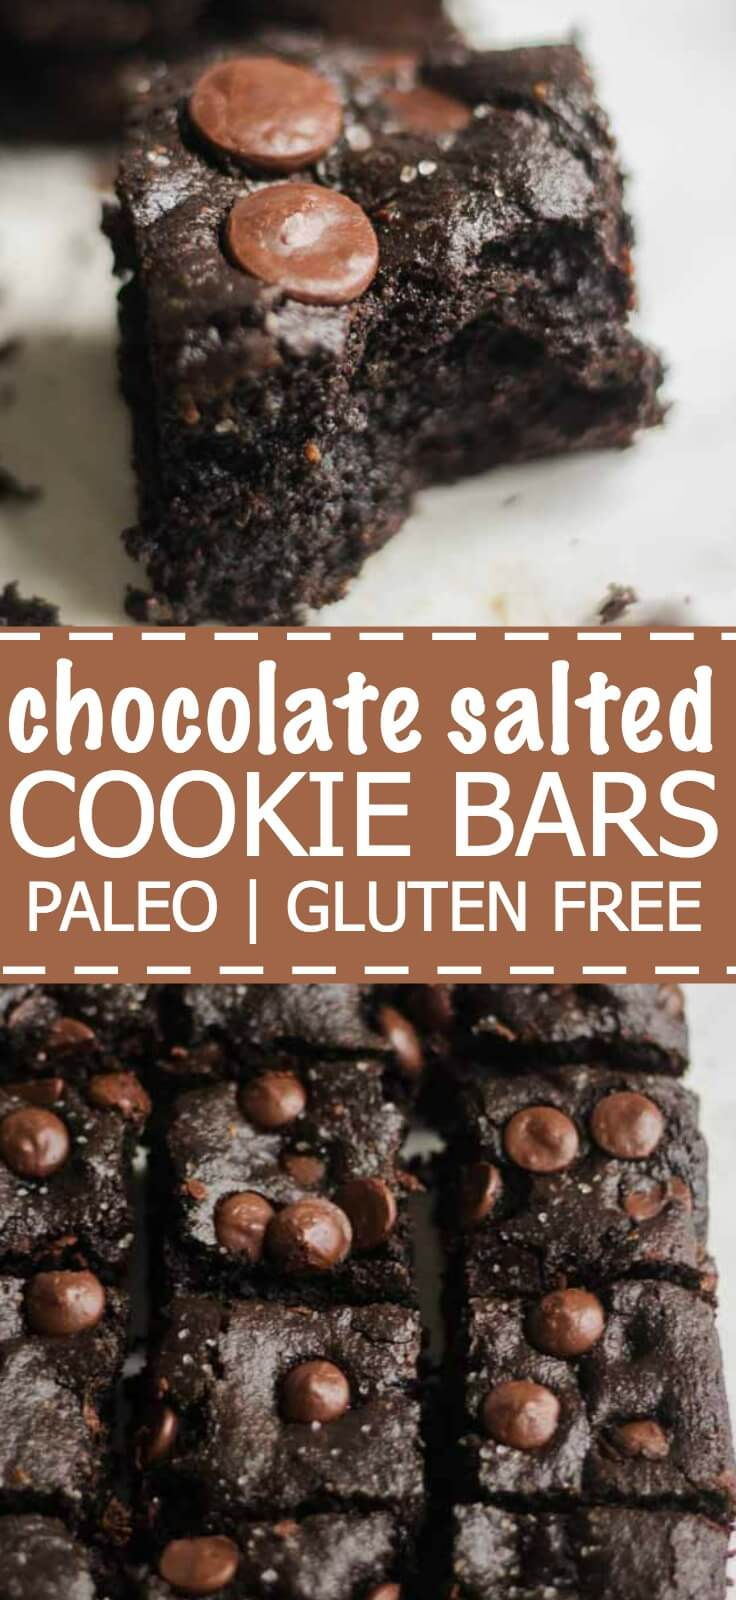 thick and chewy paleo chocolate salted cookie bars! these chocolate bars are naturally gluten free and are so good!